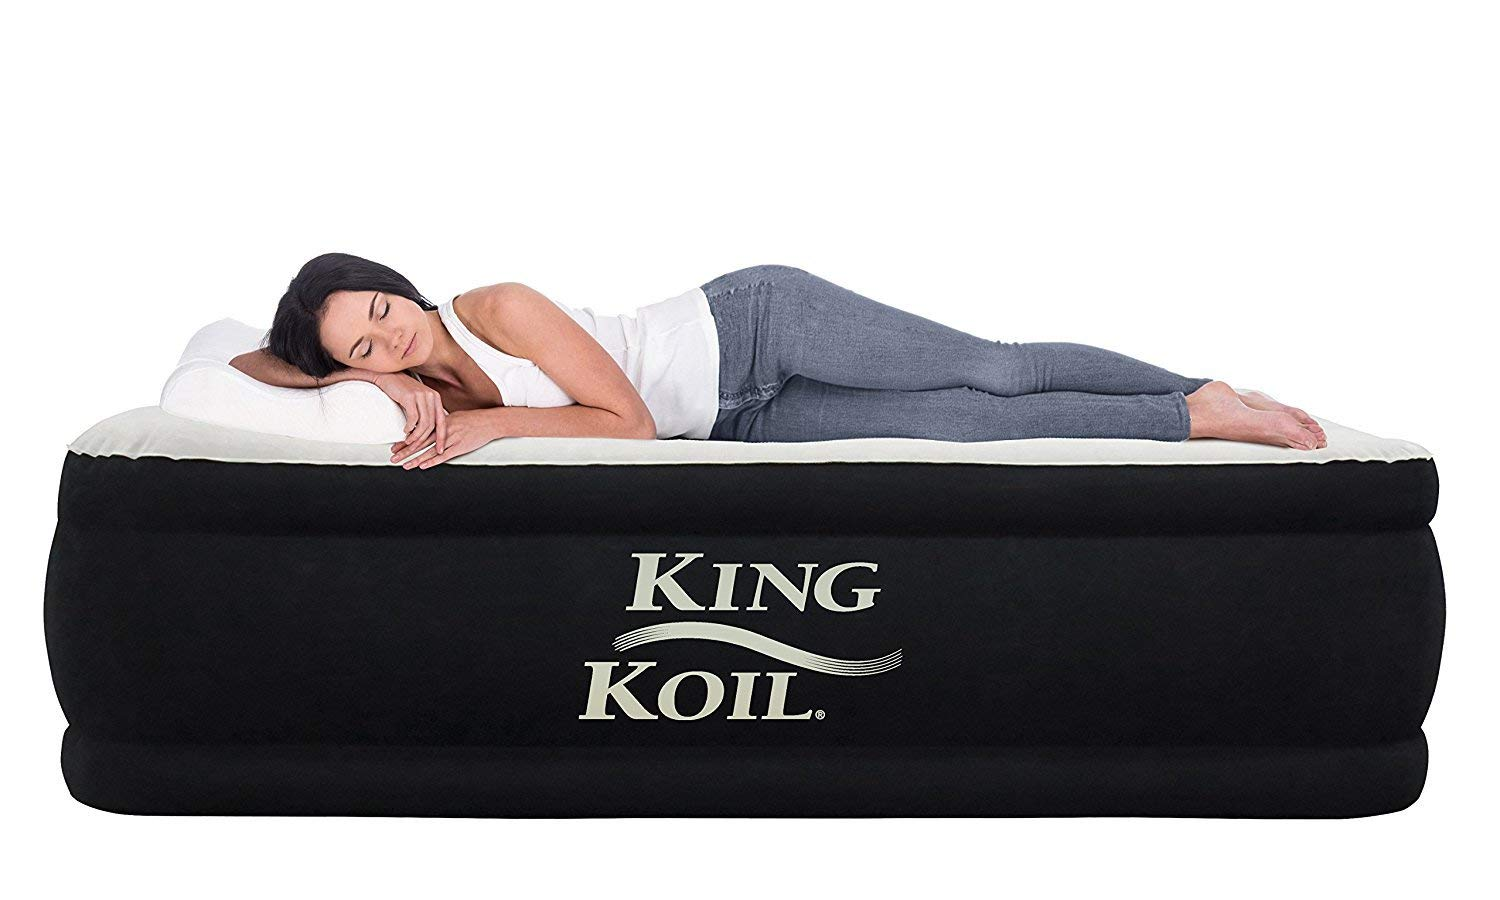 King Koil Mattress Reviews And Buying Guide by www.snoremagazine.com